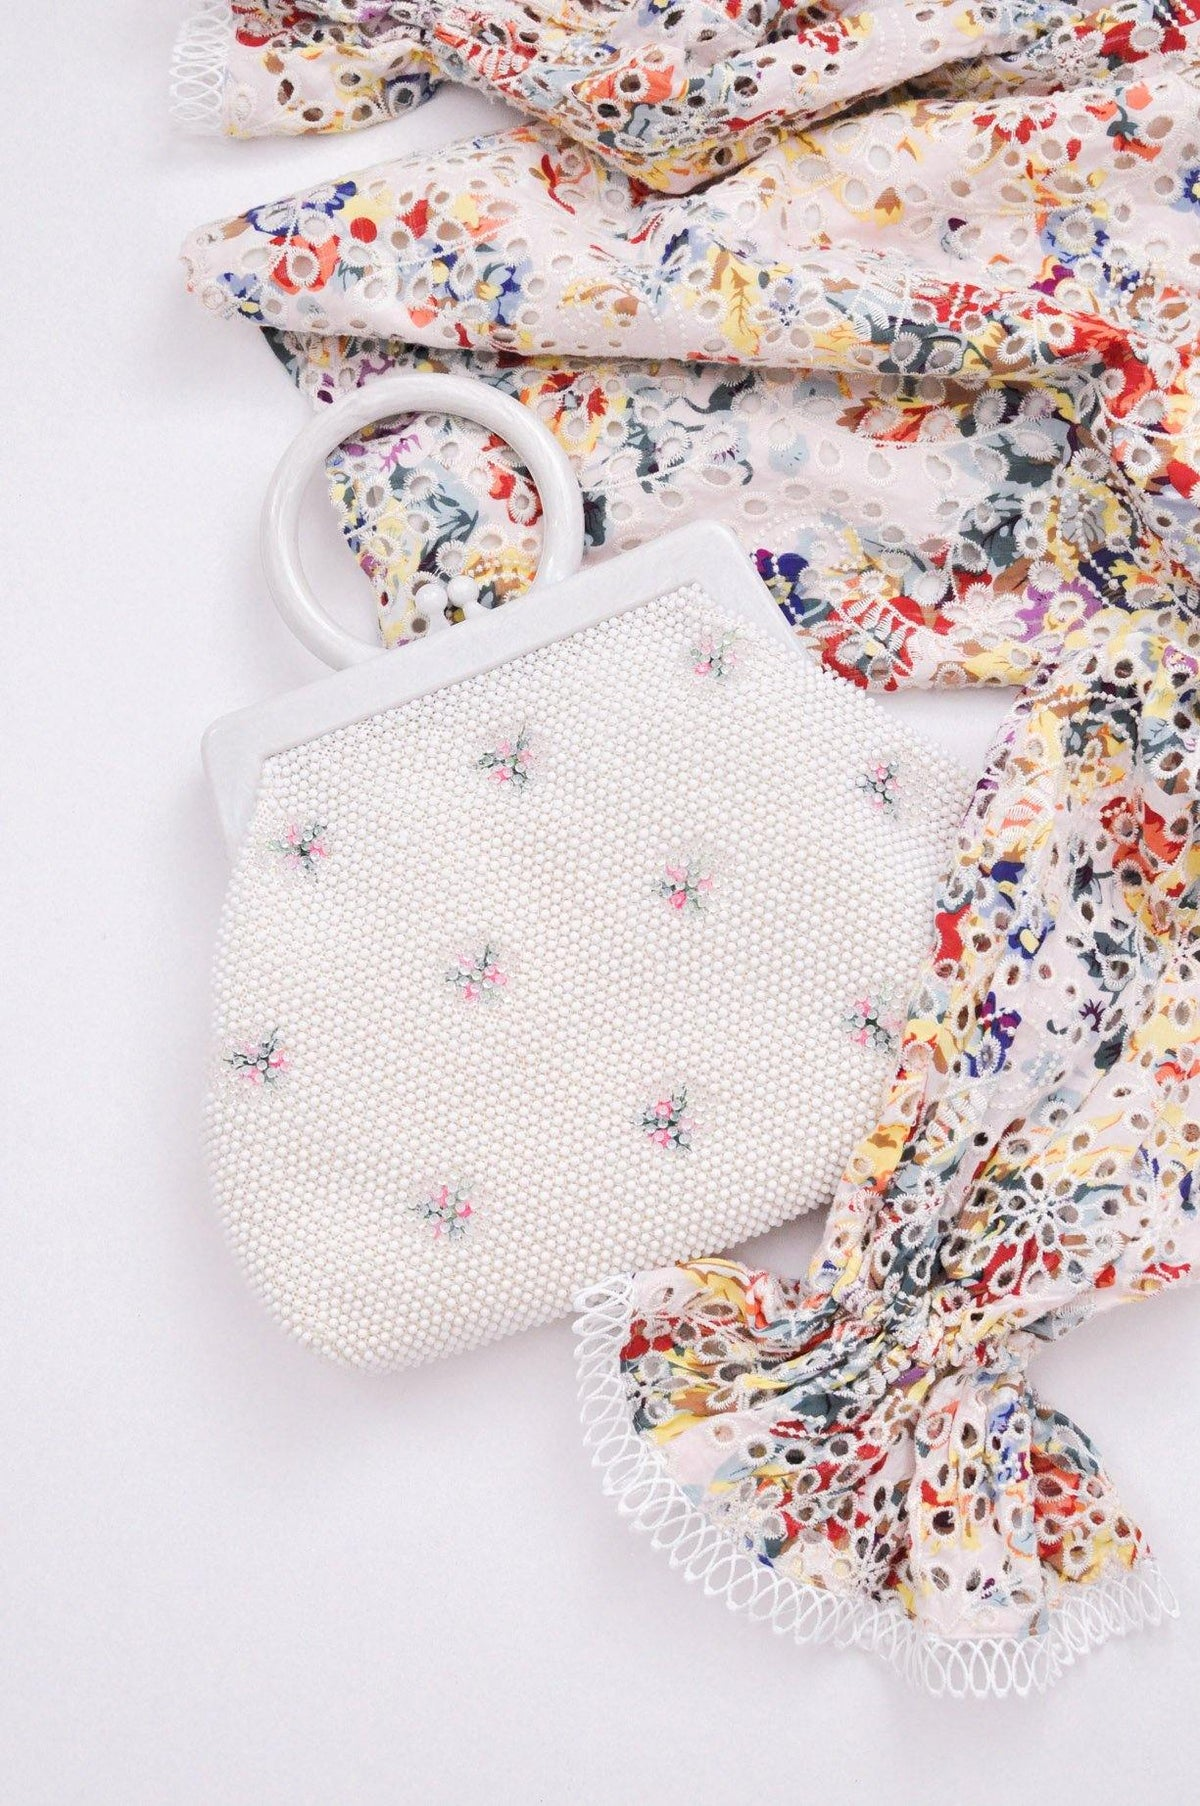 Vintage beaded and floral bag from Sweet & Spark.